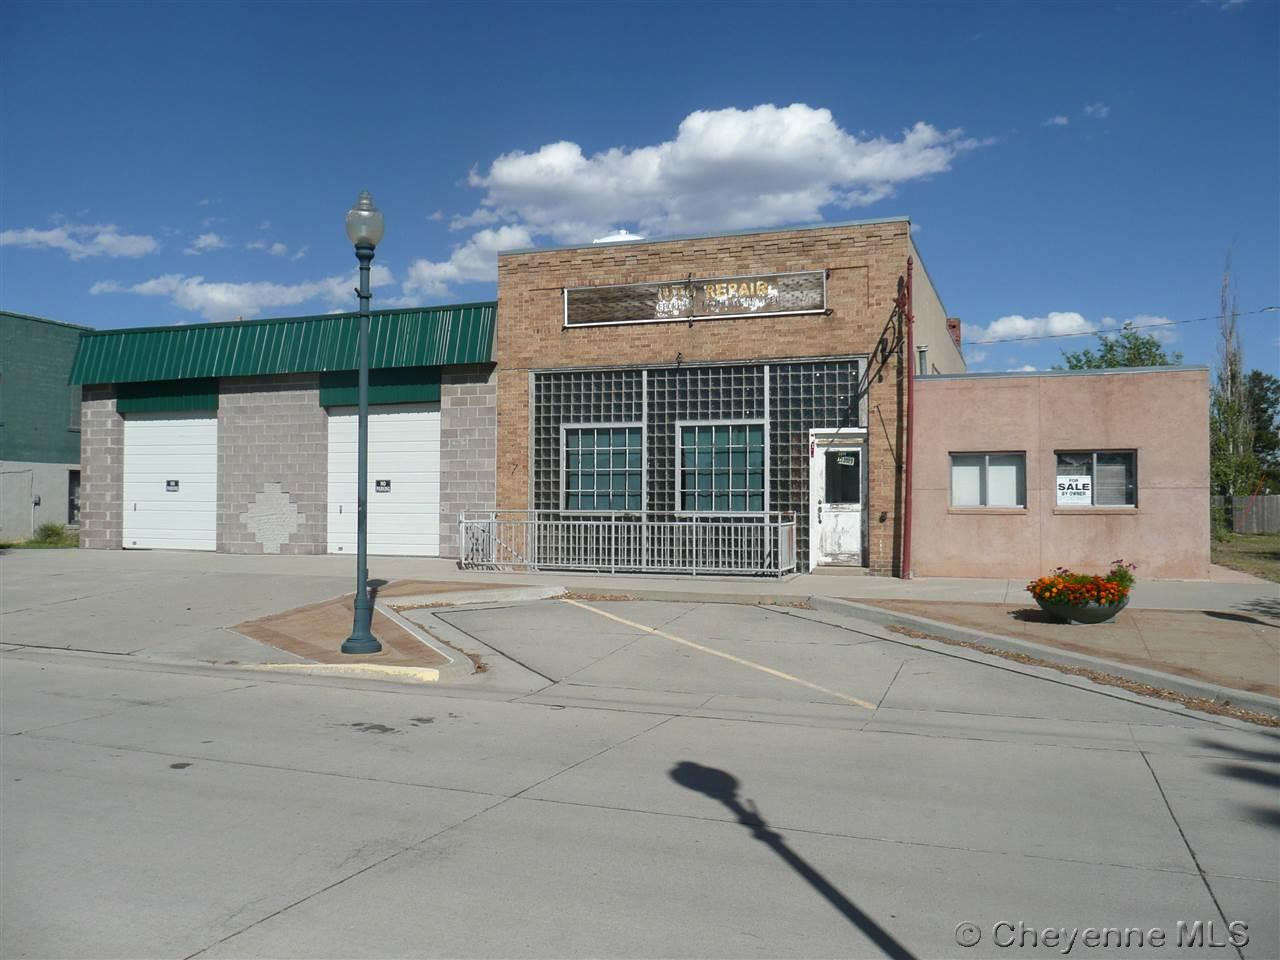 Commercial for Sale at 117 & 115 Main St 117 & 115 Main St Burns, Wyoming 82055 United States